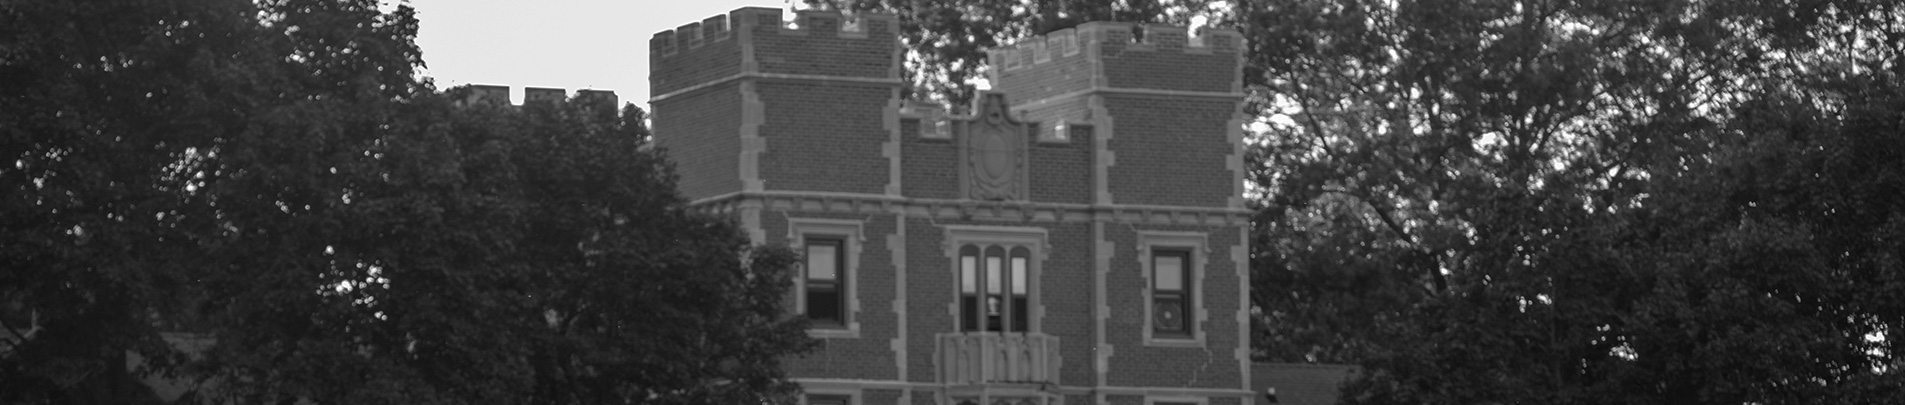 Black and white image of the ramparts of Gates Tower.